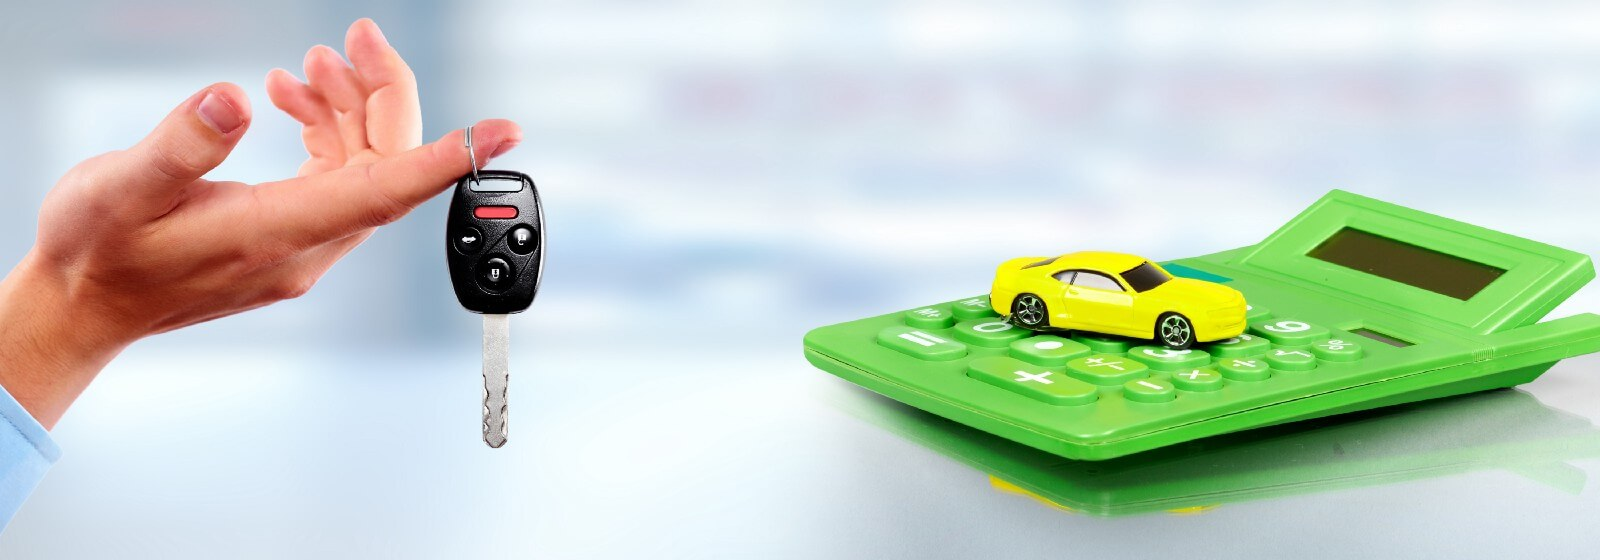 Hand with car key hanging from index finger, green calculator with yellow toy car on it